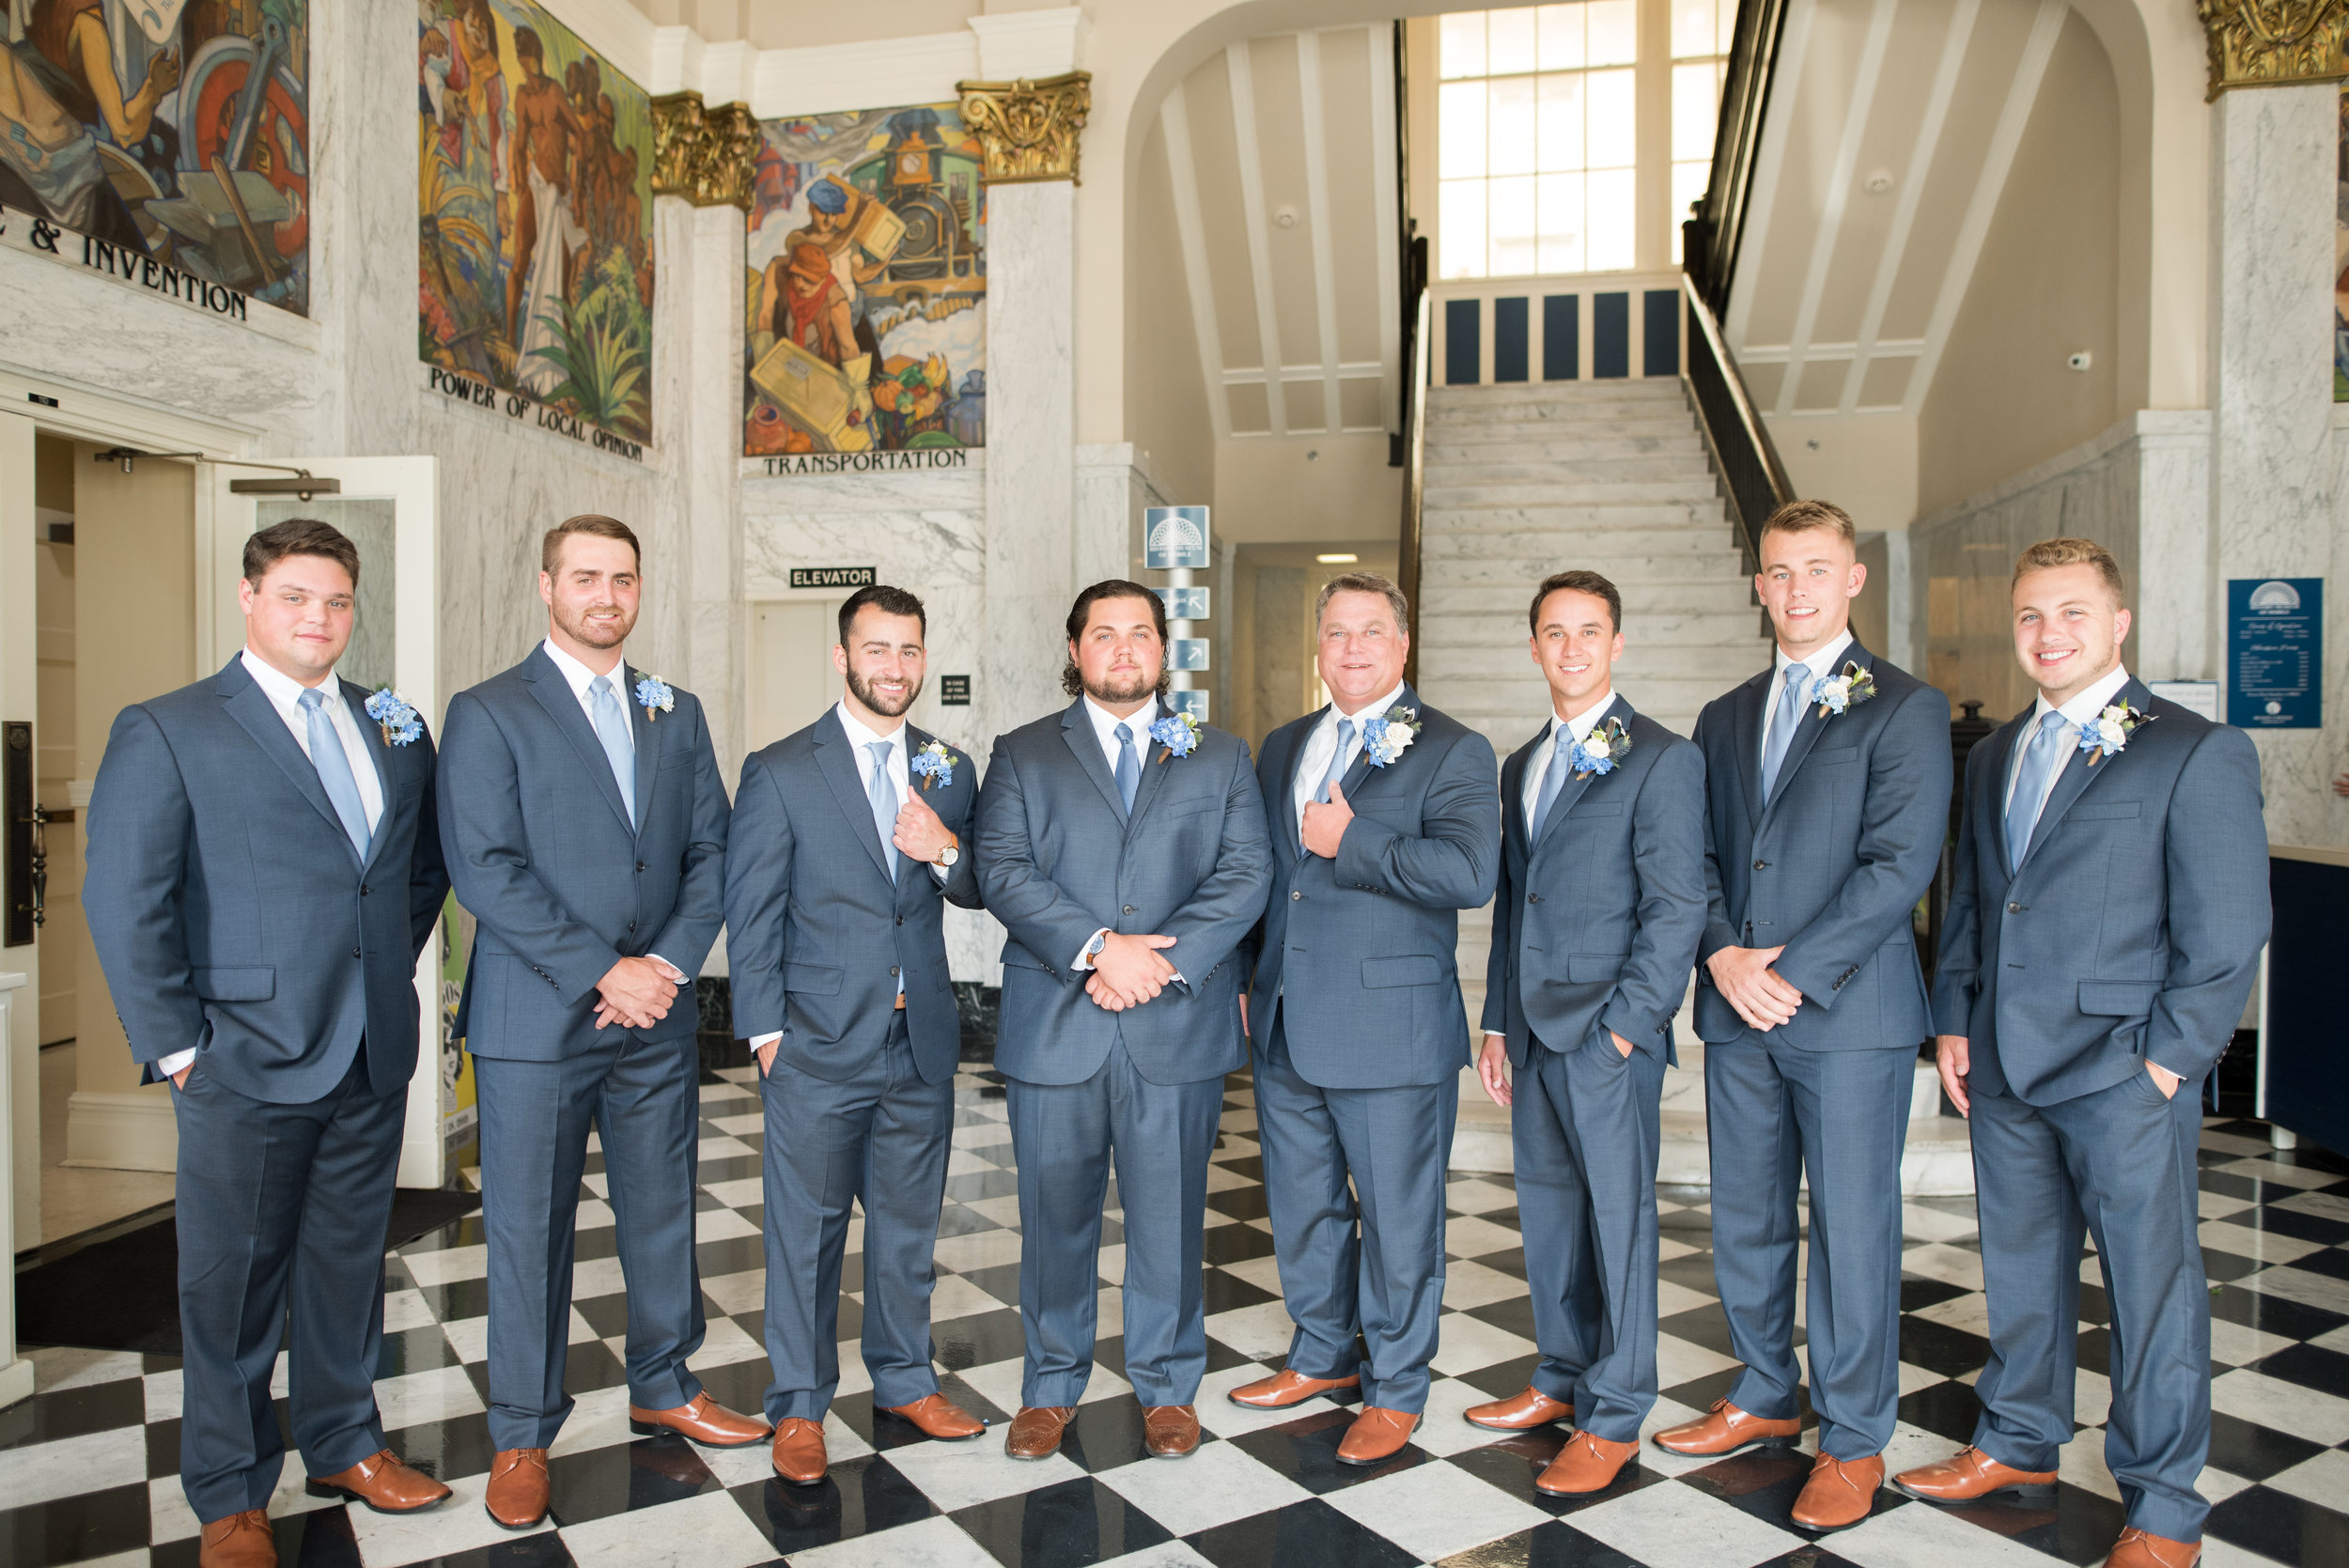 History museum of mobile, alabama wedding groomsmen shot by kristen marcus photography in June